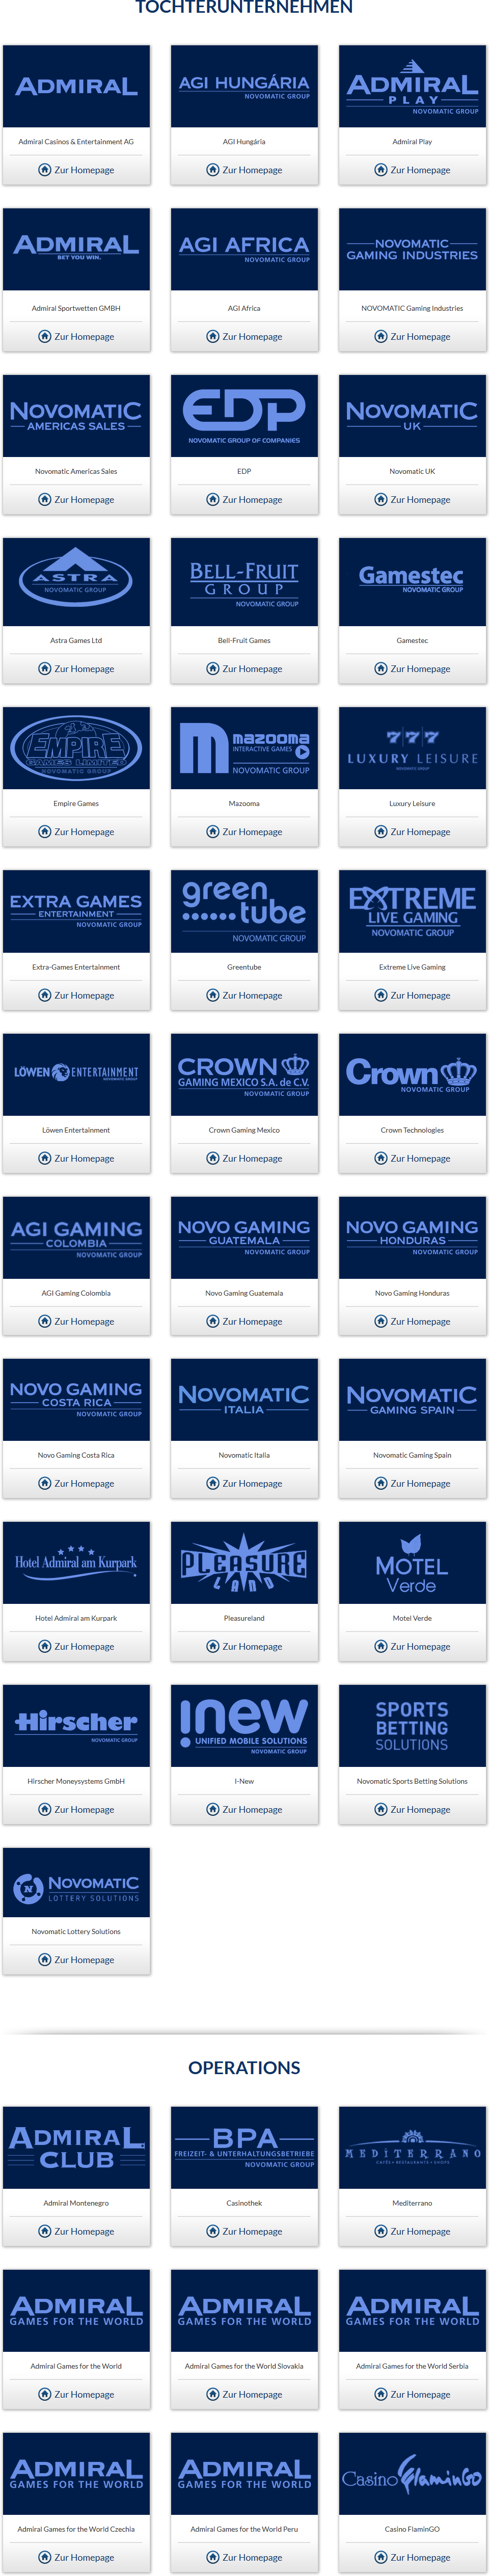 Novomatic - Group of Companies